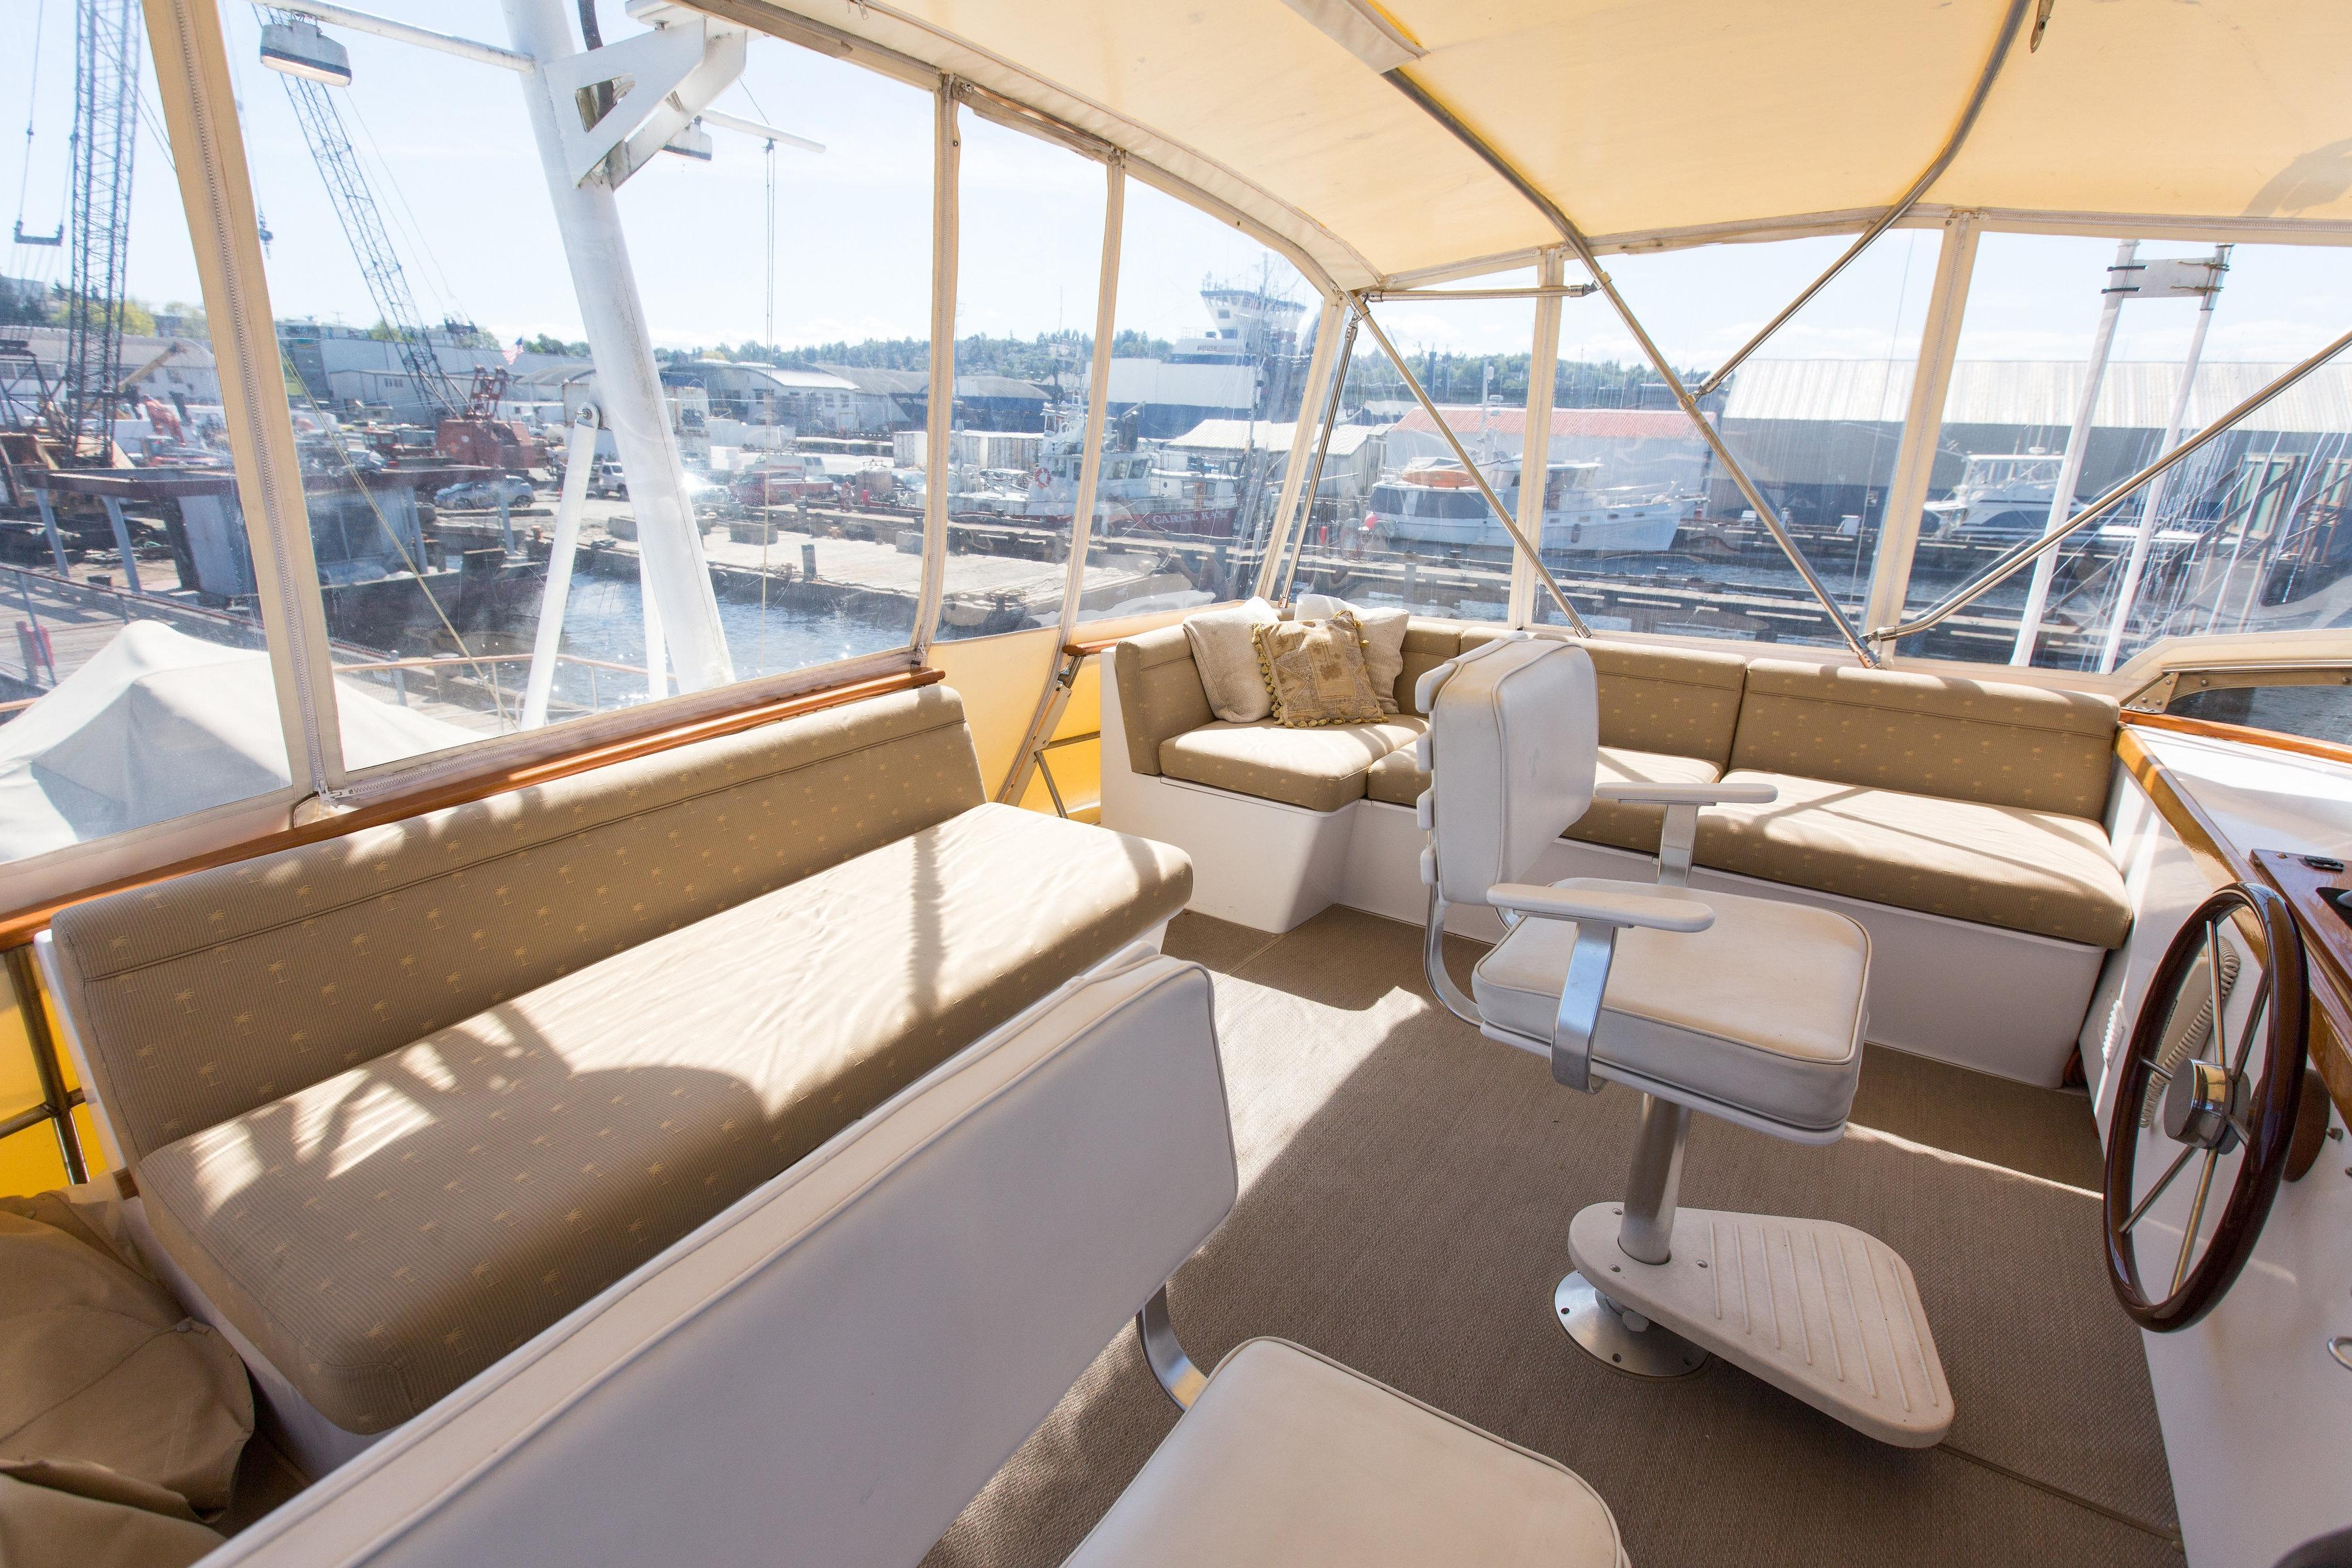 Lots of seating on flybridge